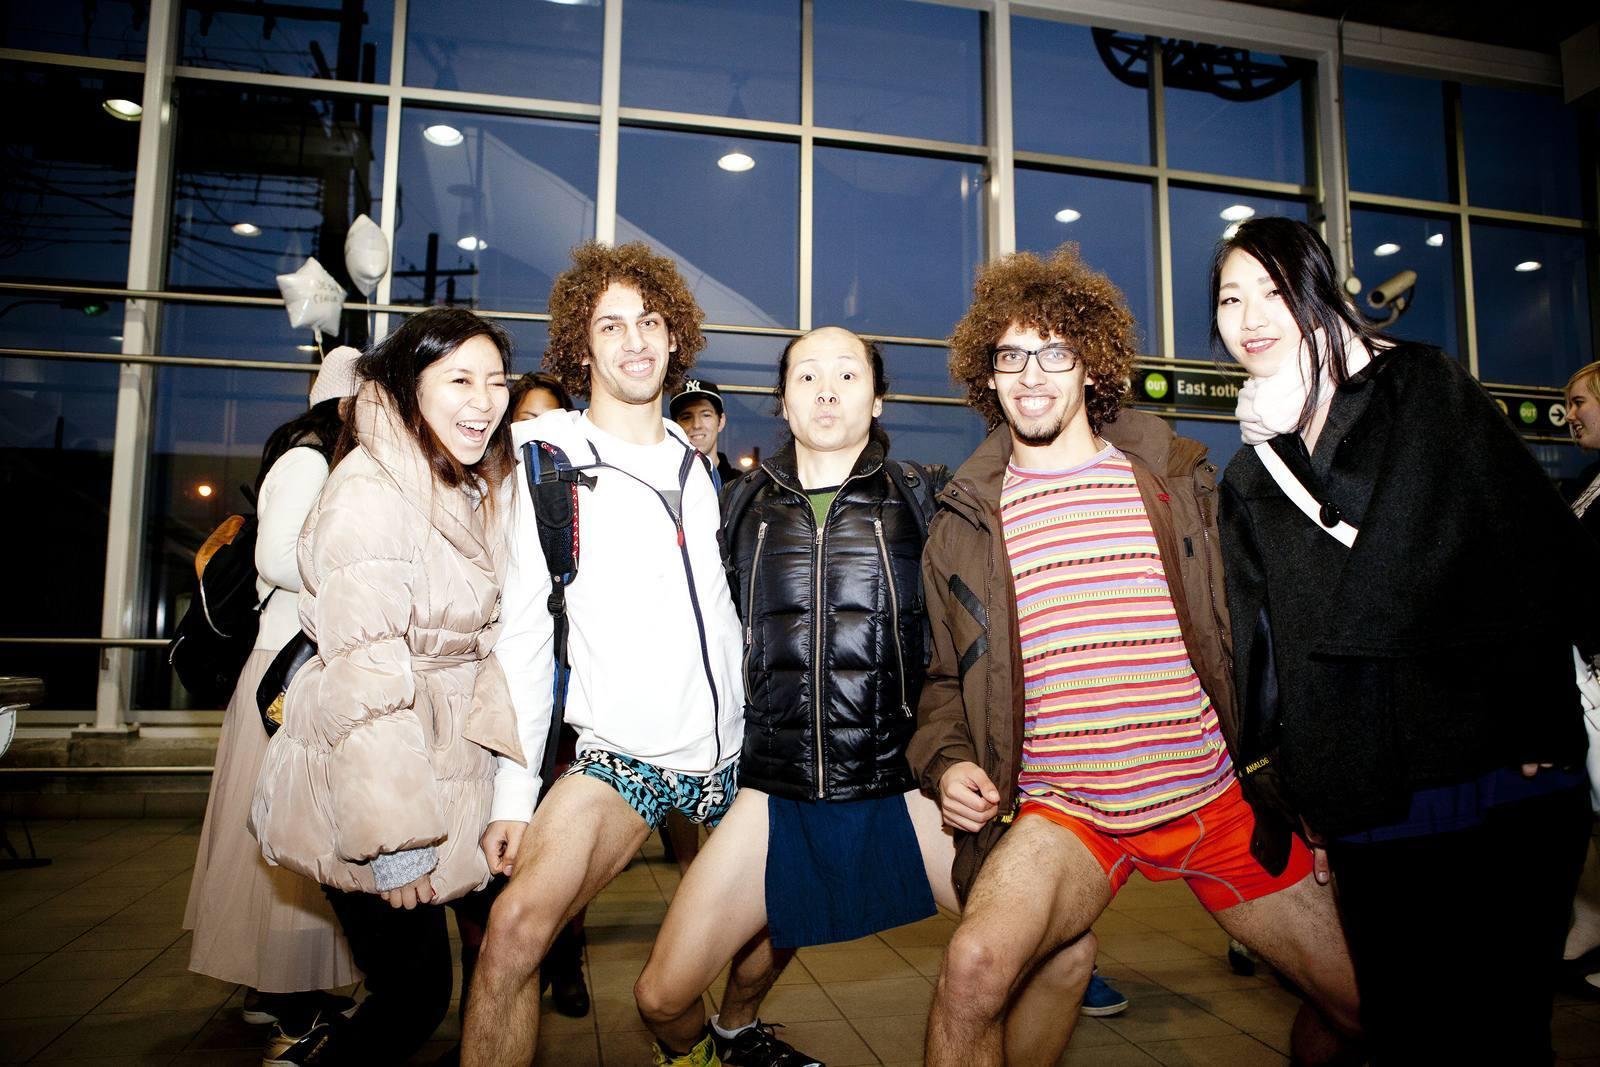 no pants8 No Pants Skytrain Ride 2015 in Vancouver